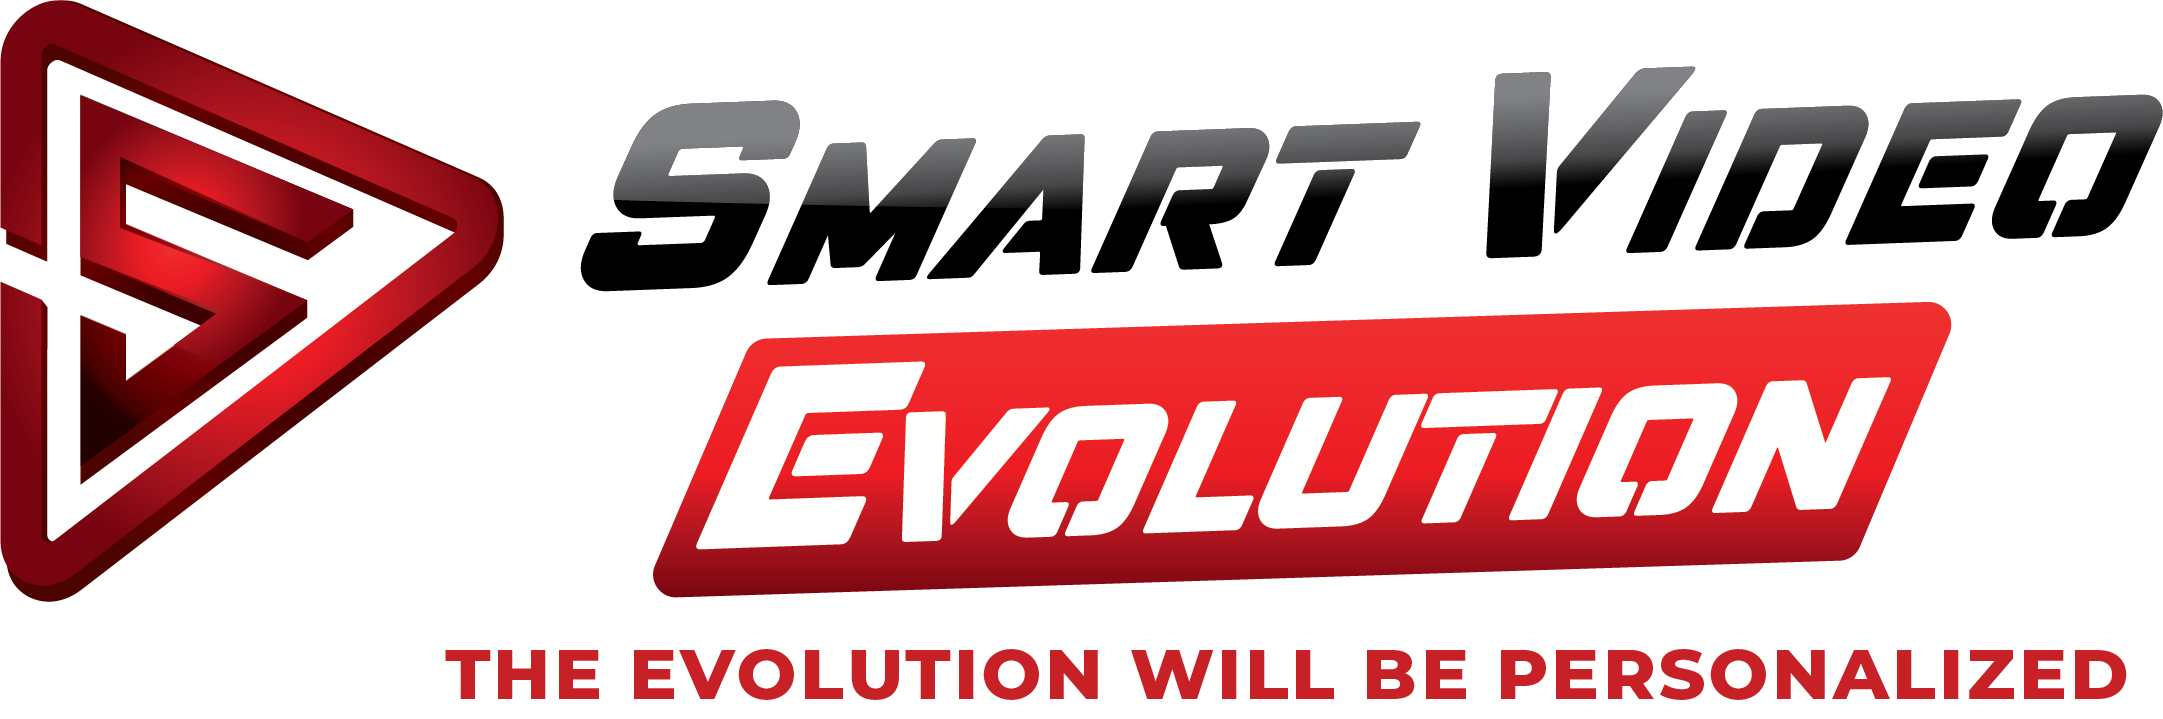 Smart video Evolution logo